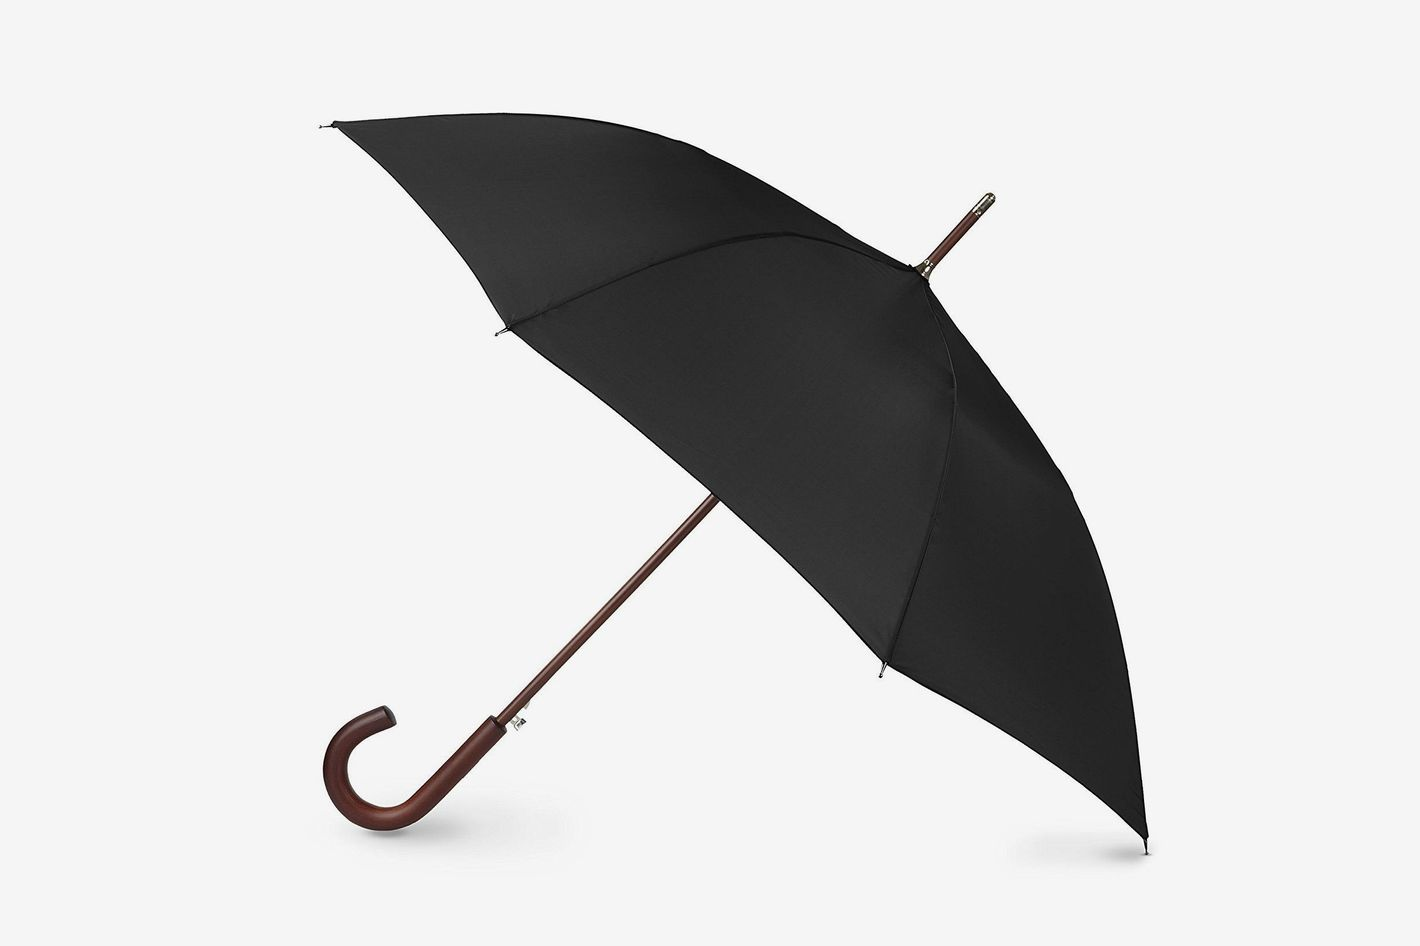 Large size strong Mens womens Umbrella Opening Classic Traditional Gentlemens